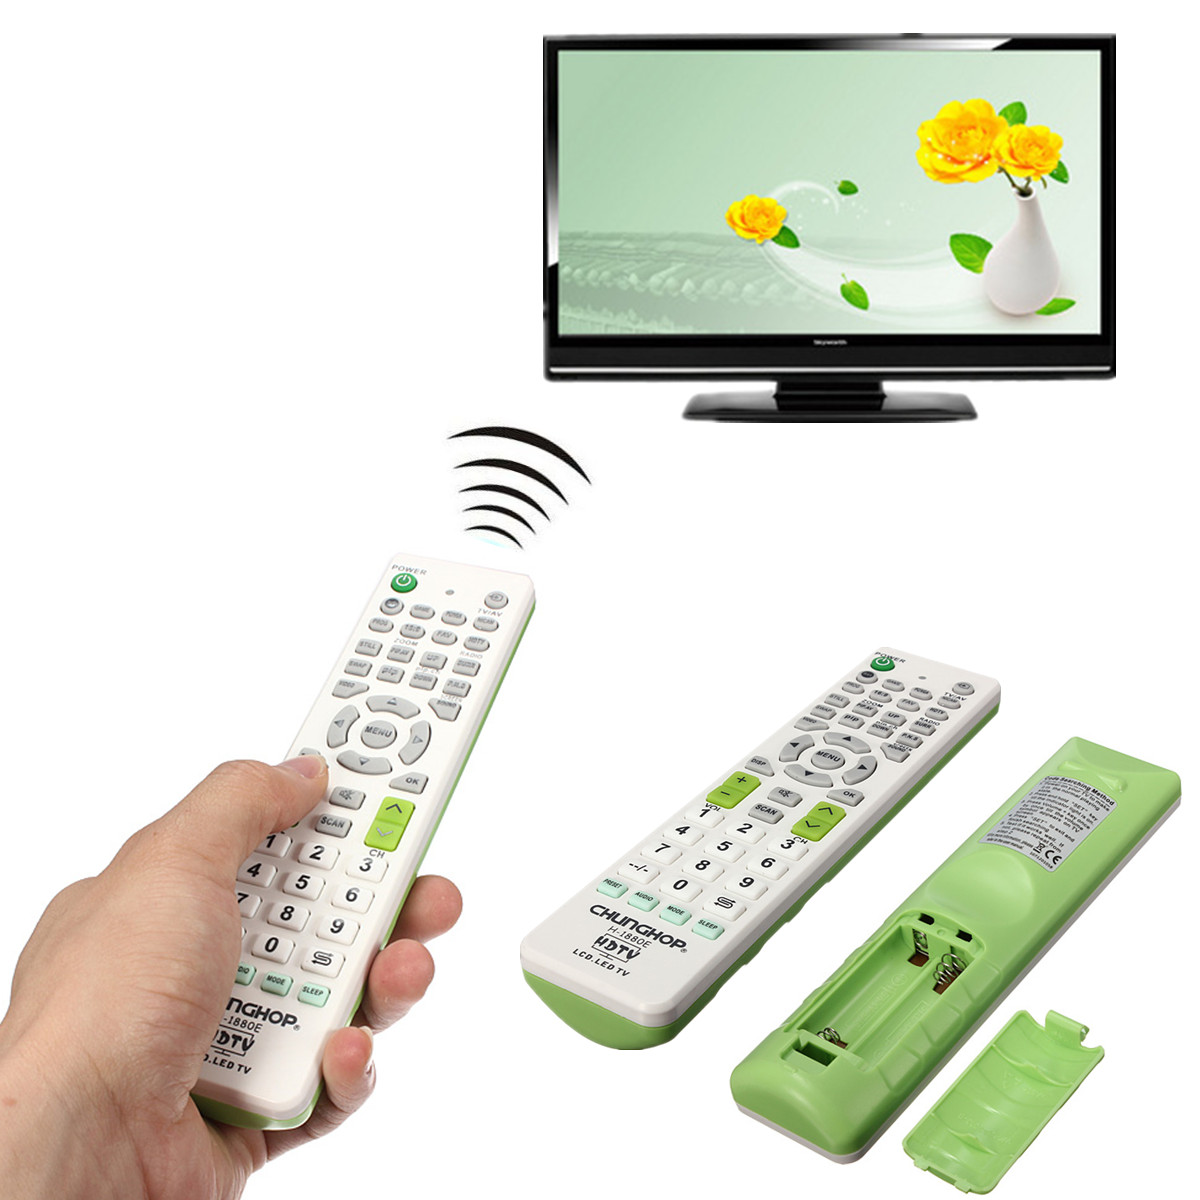 CHUNGHOP H-1880E Portable Universal TV Universal Remote Control Controller Replacement for Sony For Panasonic Television Sets chunghop rm139ex learning remote control universal replacement for tv set